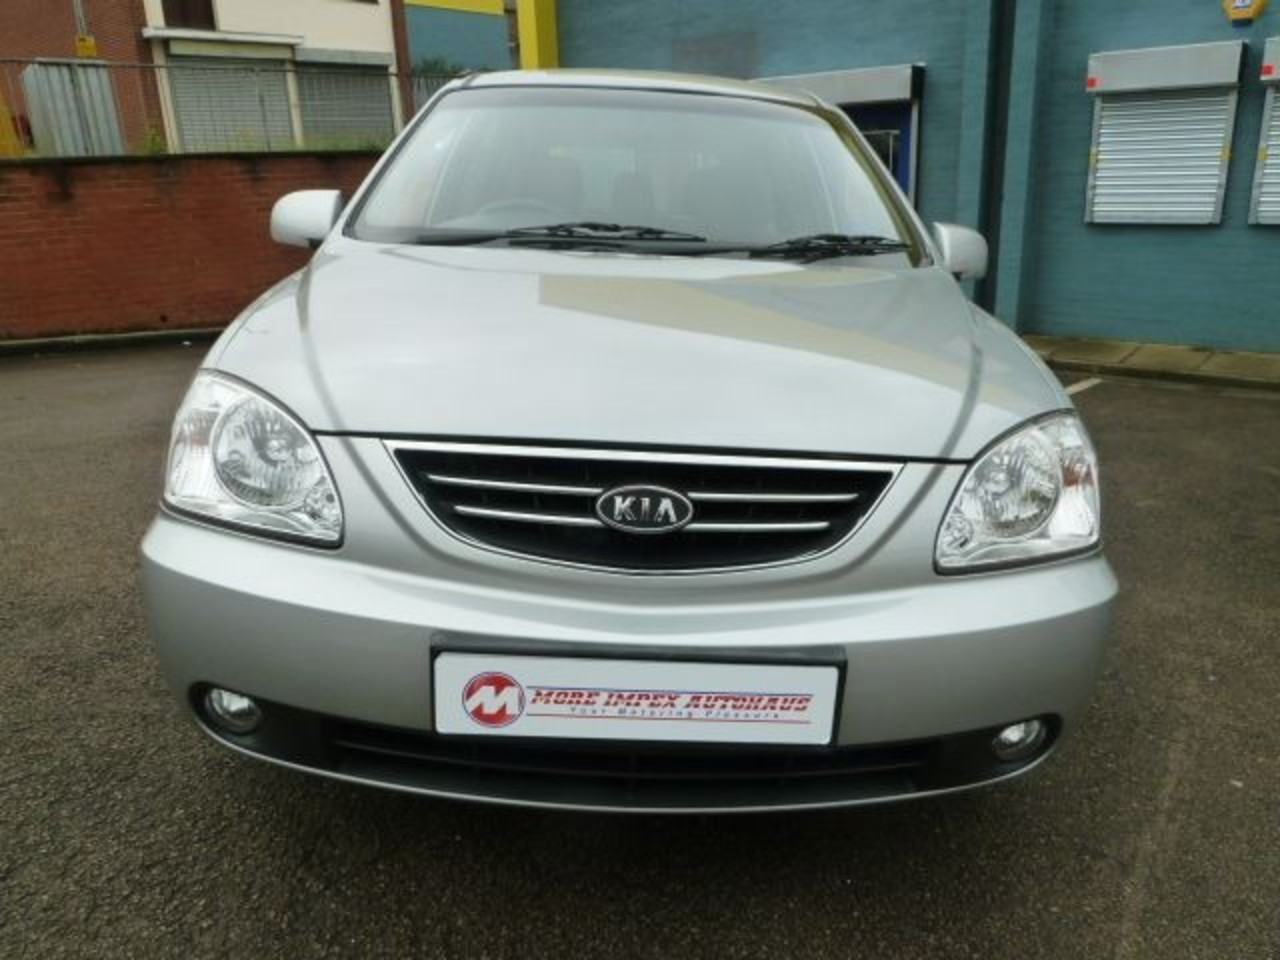 Kia Carens LX 16v Crdi for sale in Northampton Northamptonshire ...